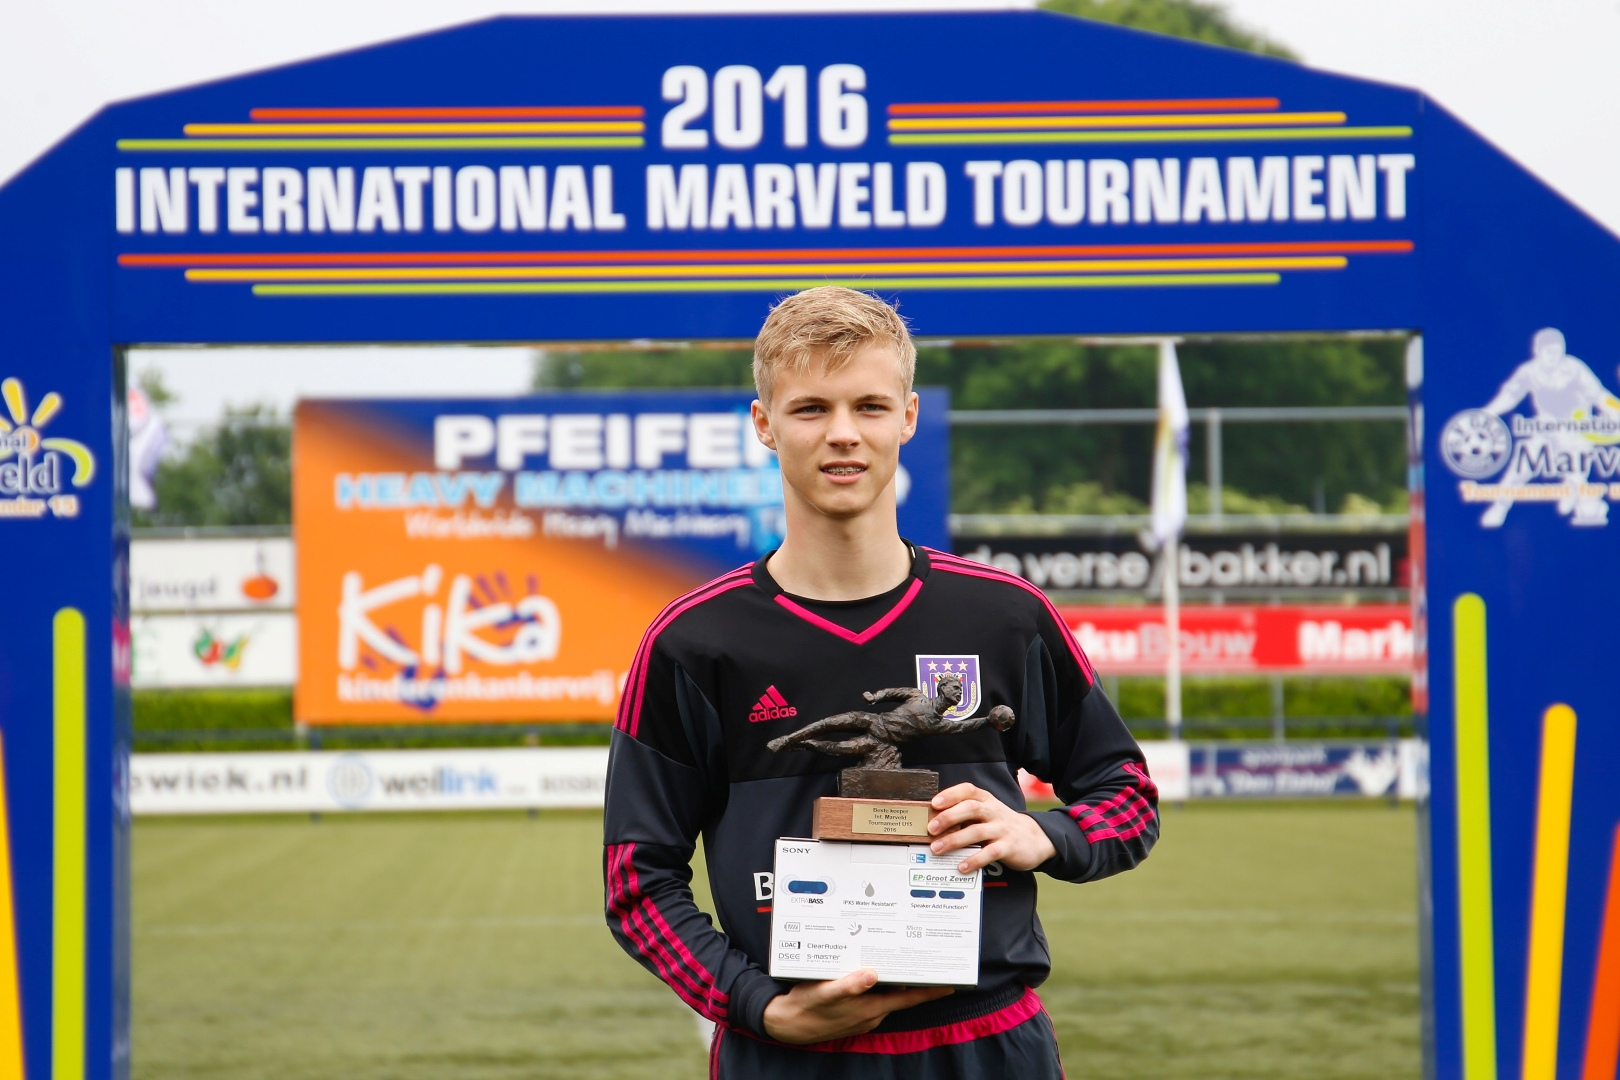 Marveld Tournament 2016 - Best Goalkeeper Maxime Delanghe of RSC Anderlecht